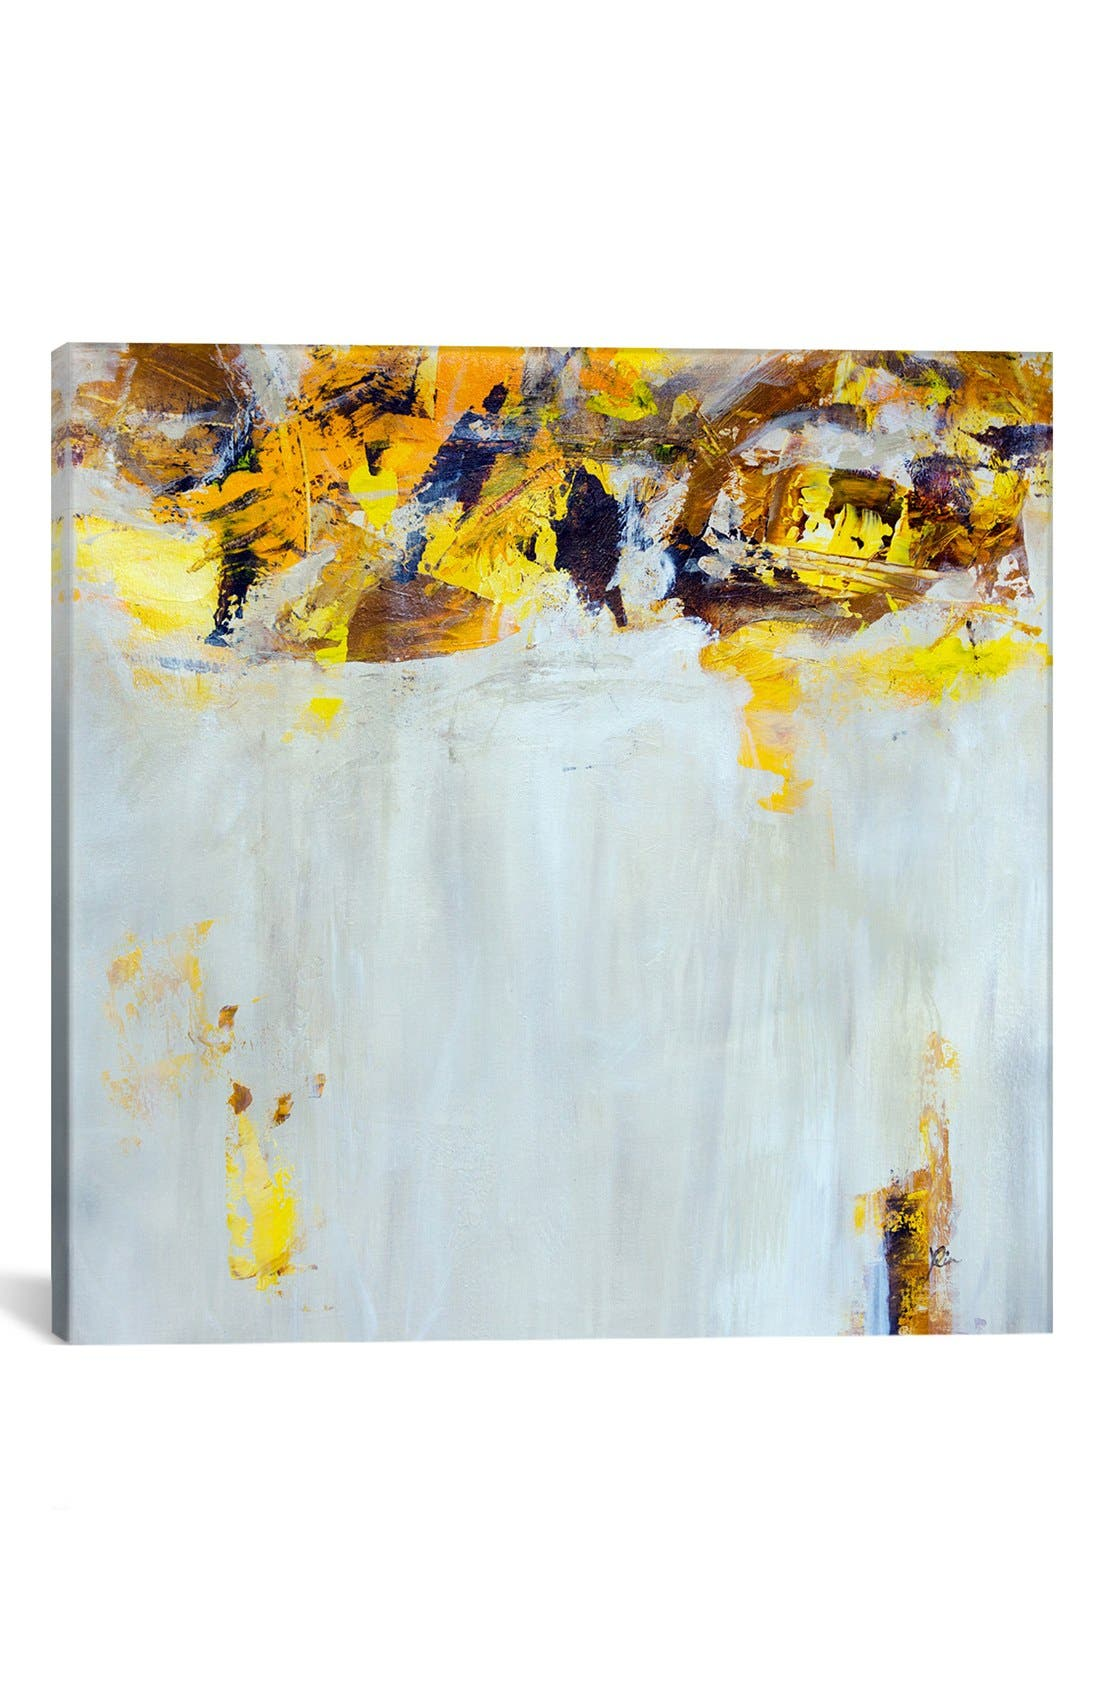 Alternate Image 1 Selected - iCanvas 'Yellow Spice' Giclée Print Canvas Art